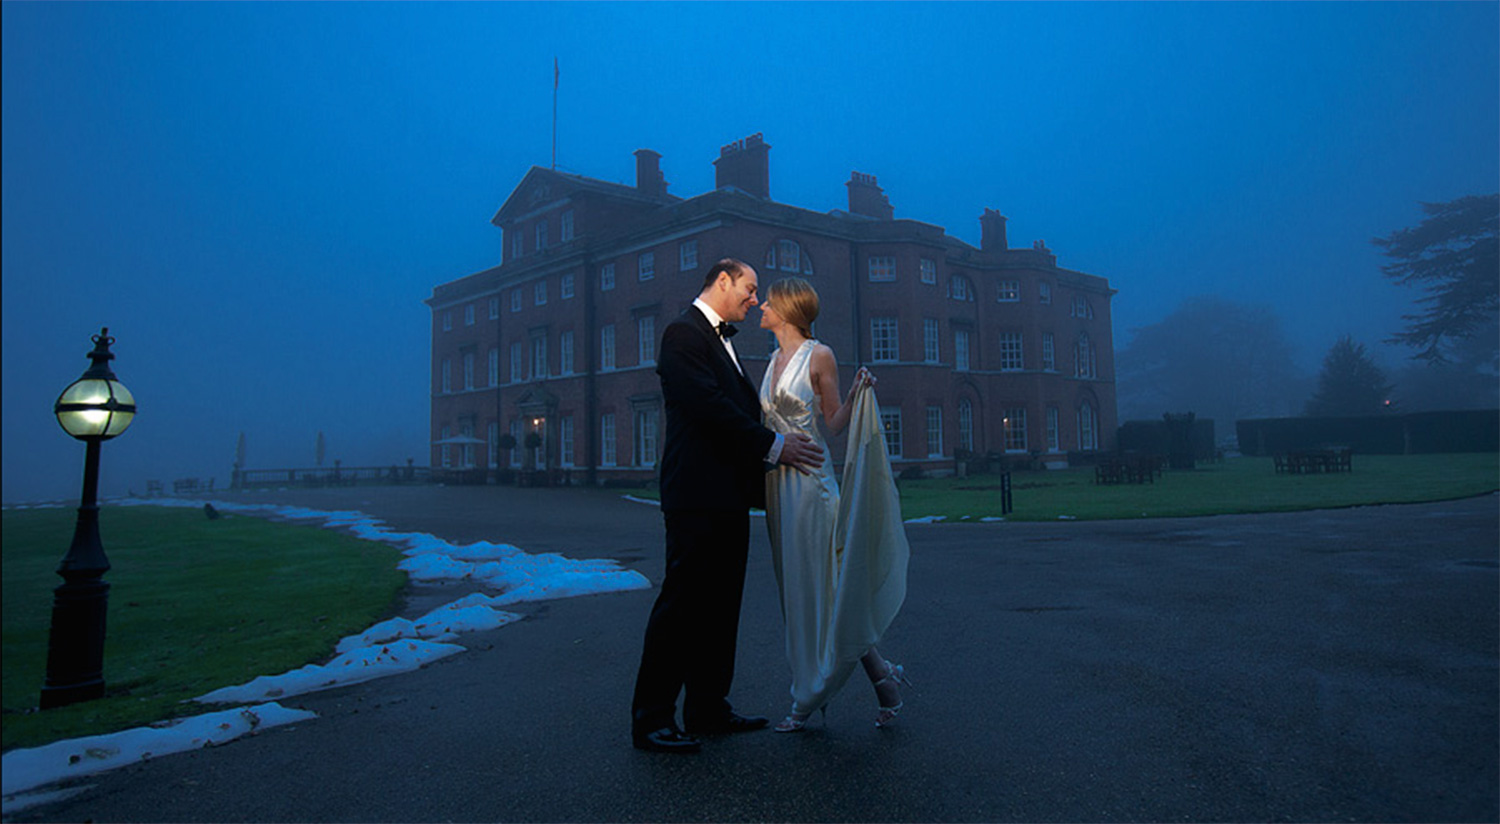 Winter Wedding - Brocket Hall, Hertfordshire